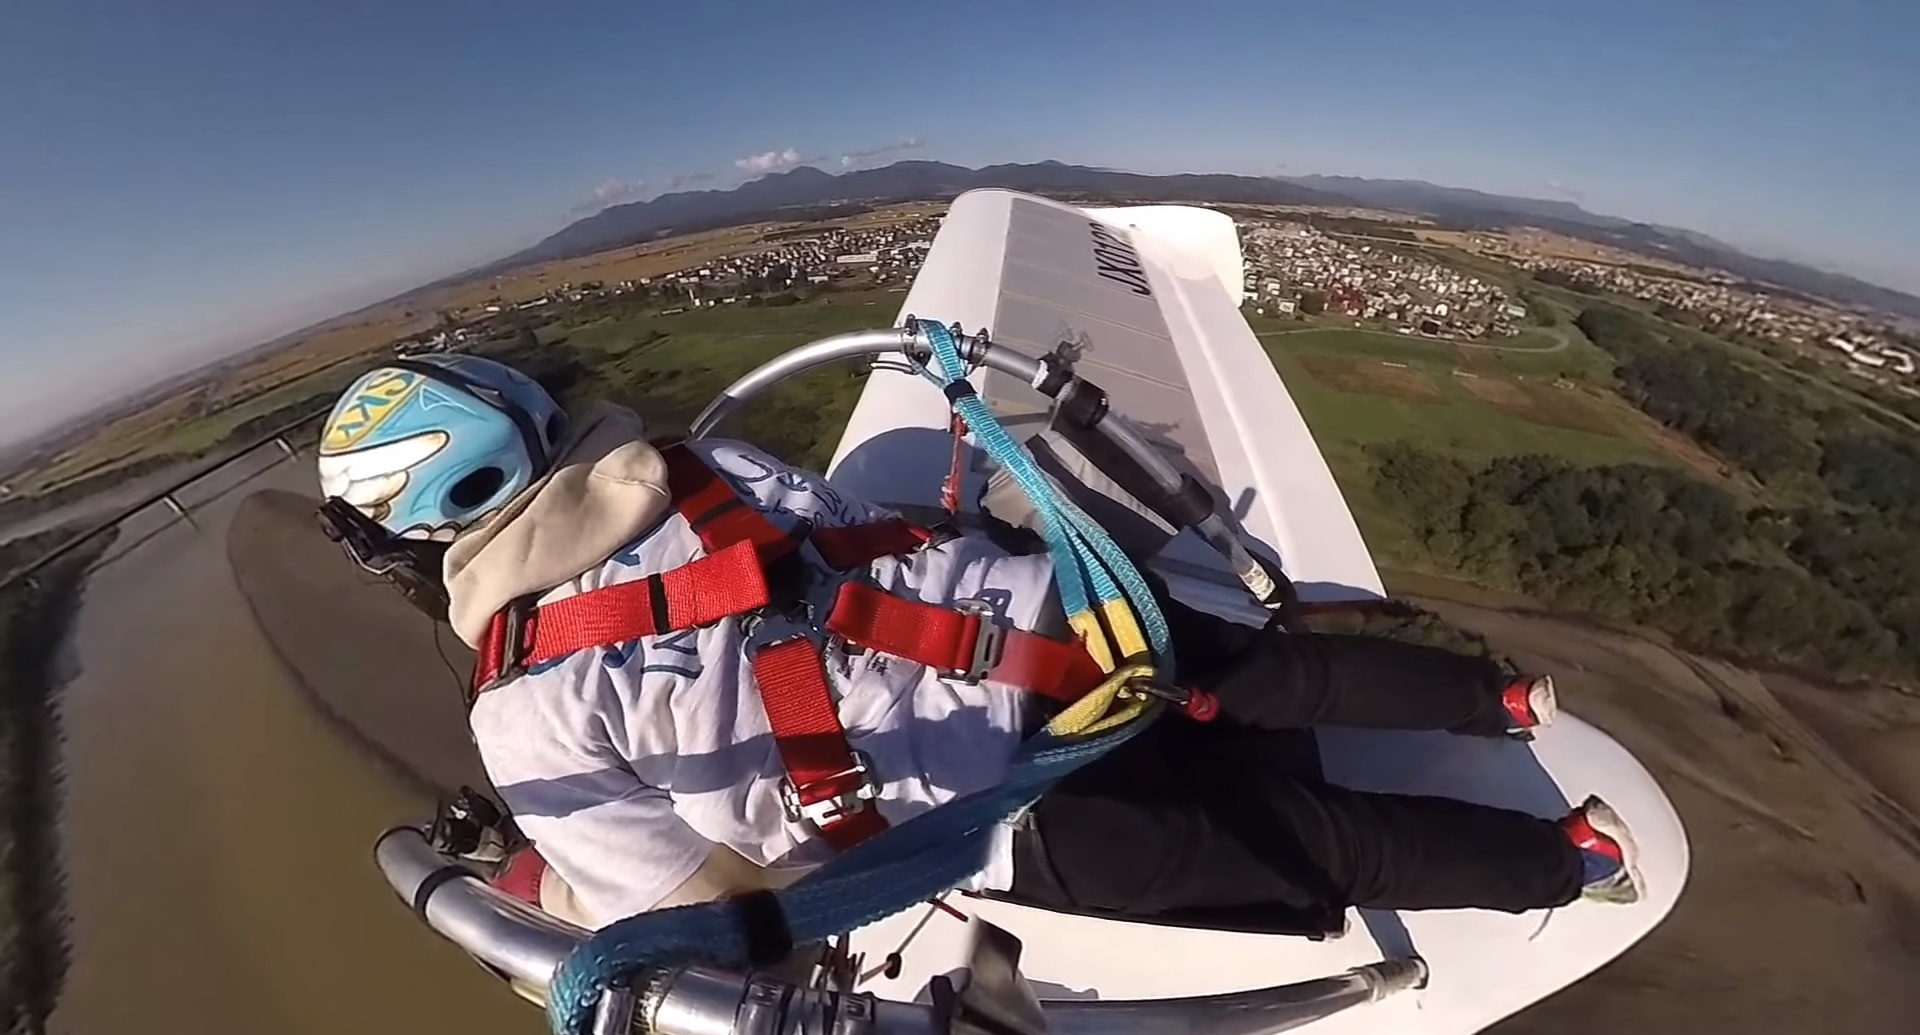 Opensky's M-02J Jet-Powered Glider Is The Coolest Thing You'll See